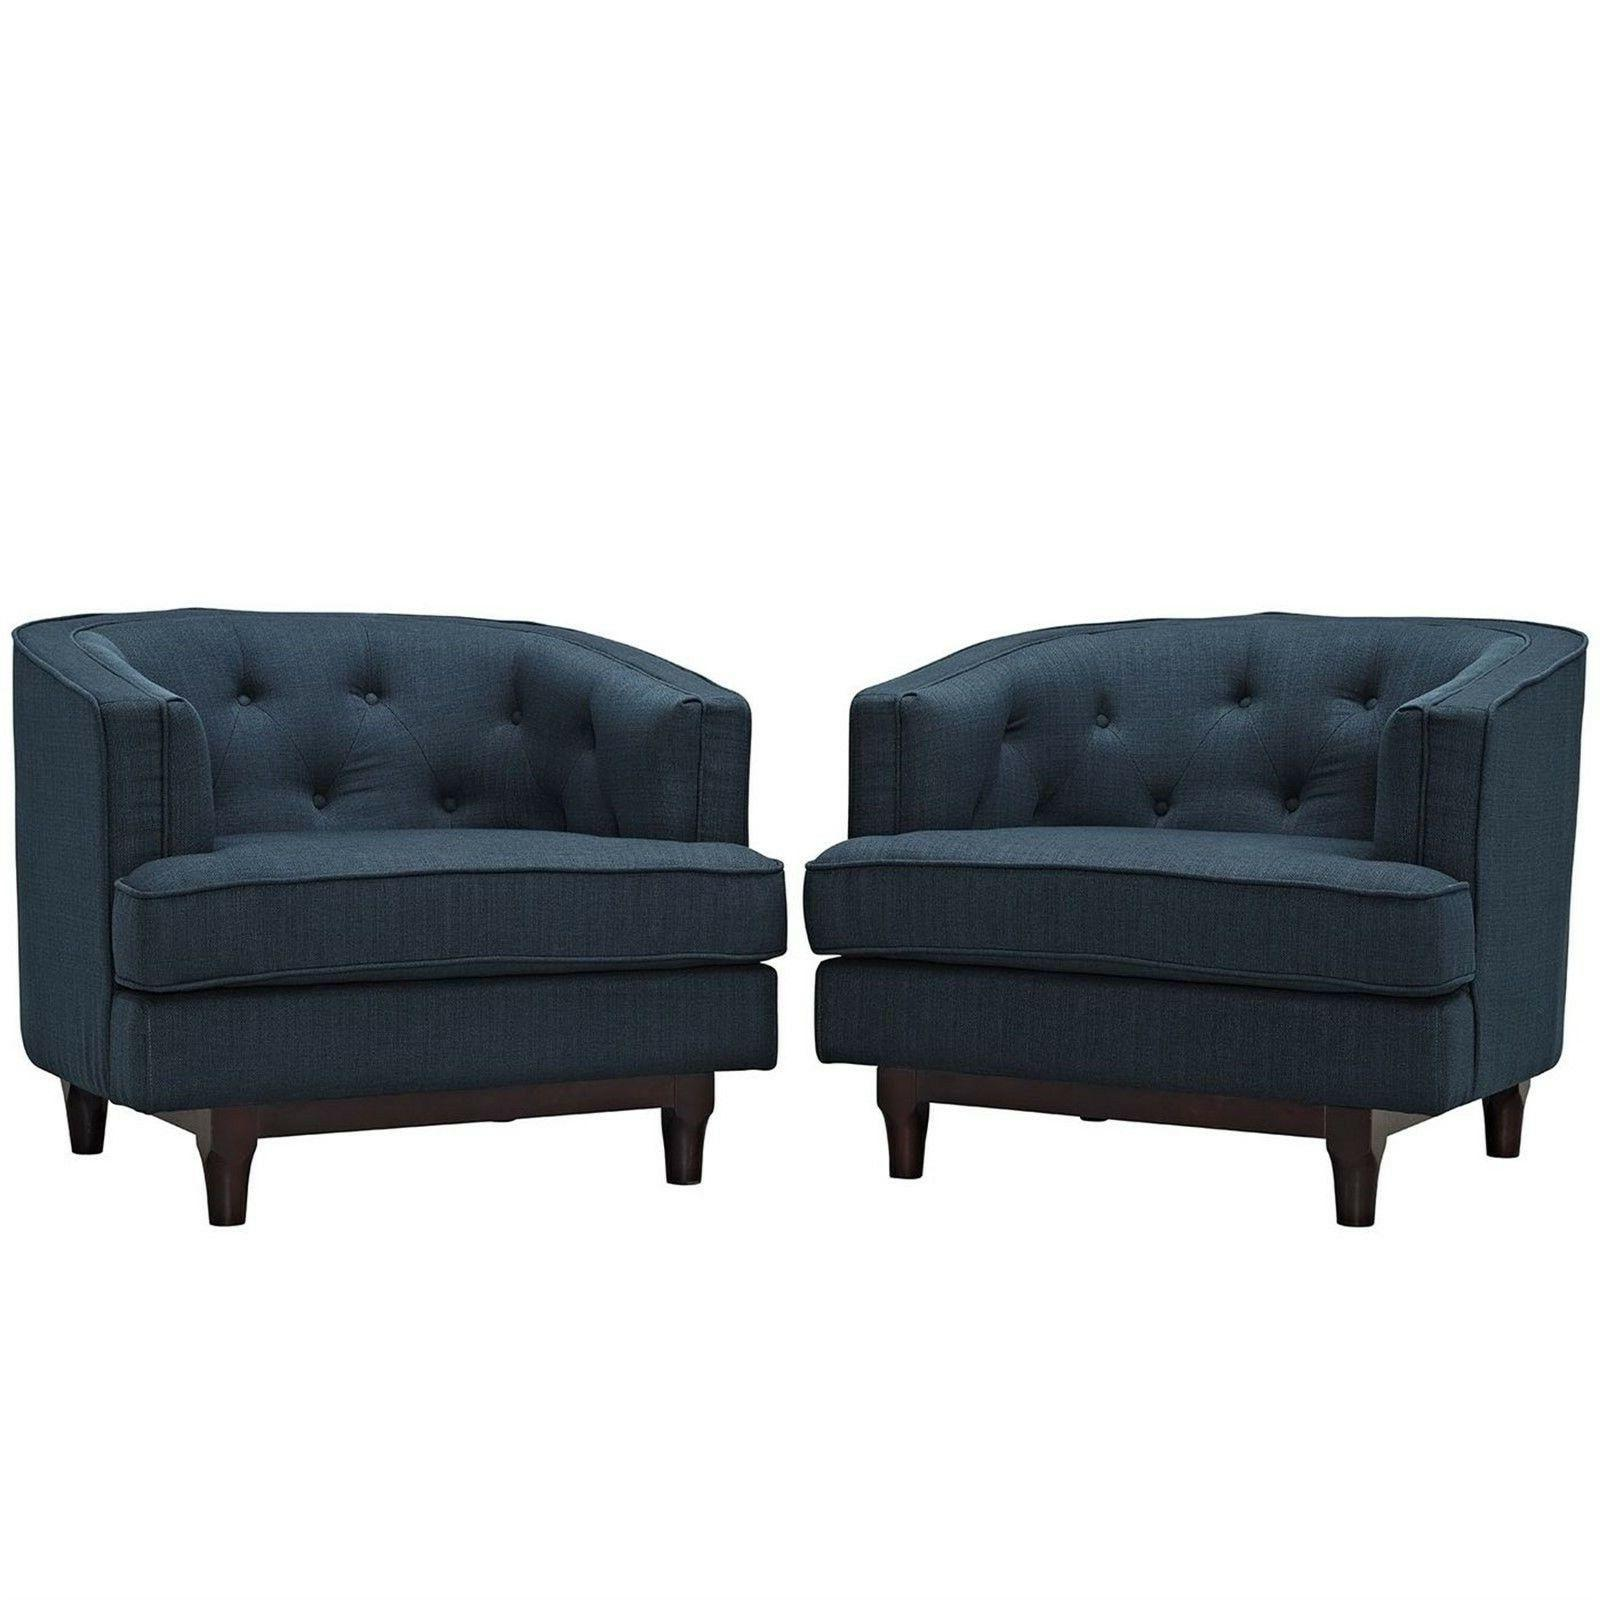 set of 2 coast modern upholstered armchairs